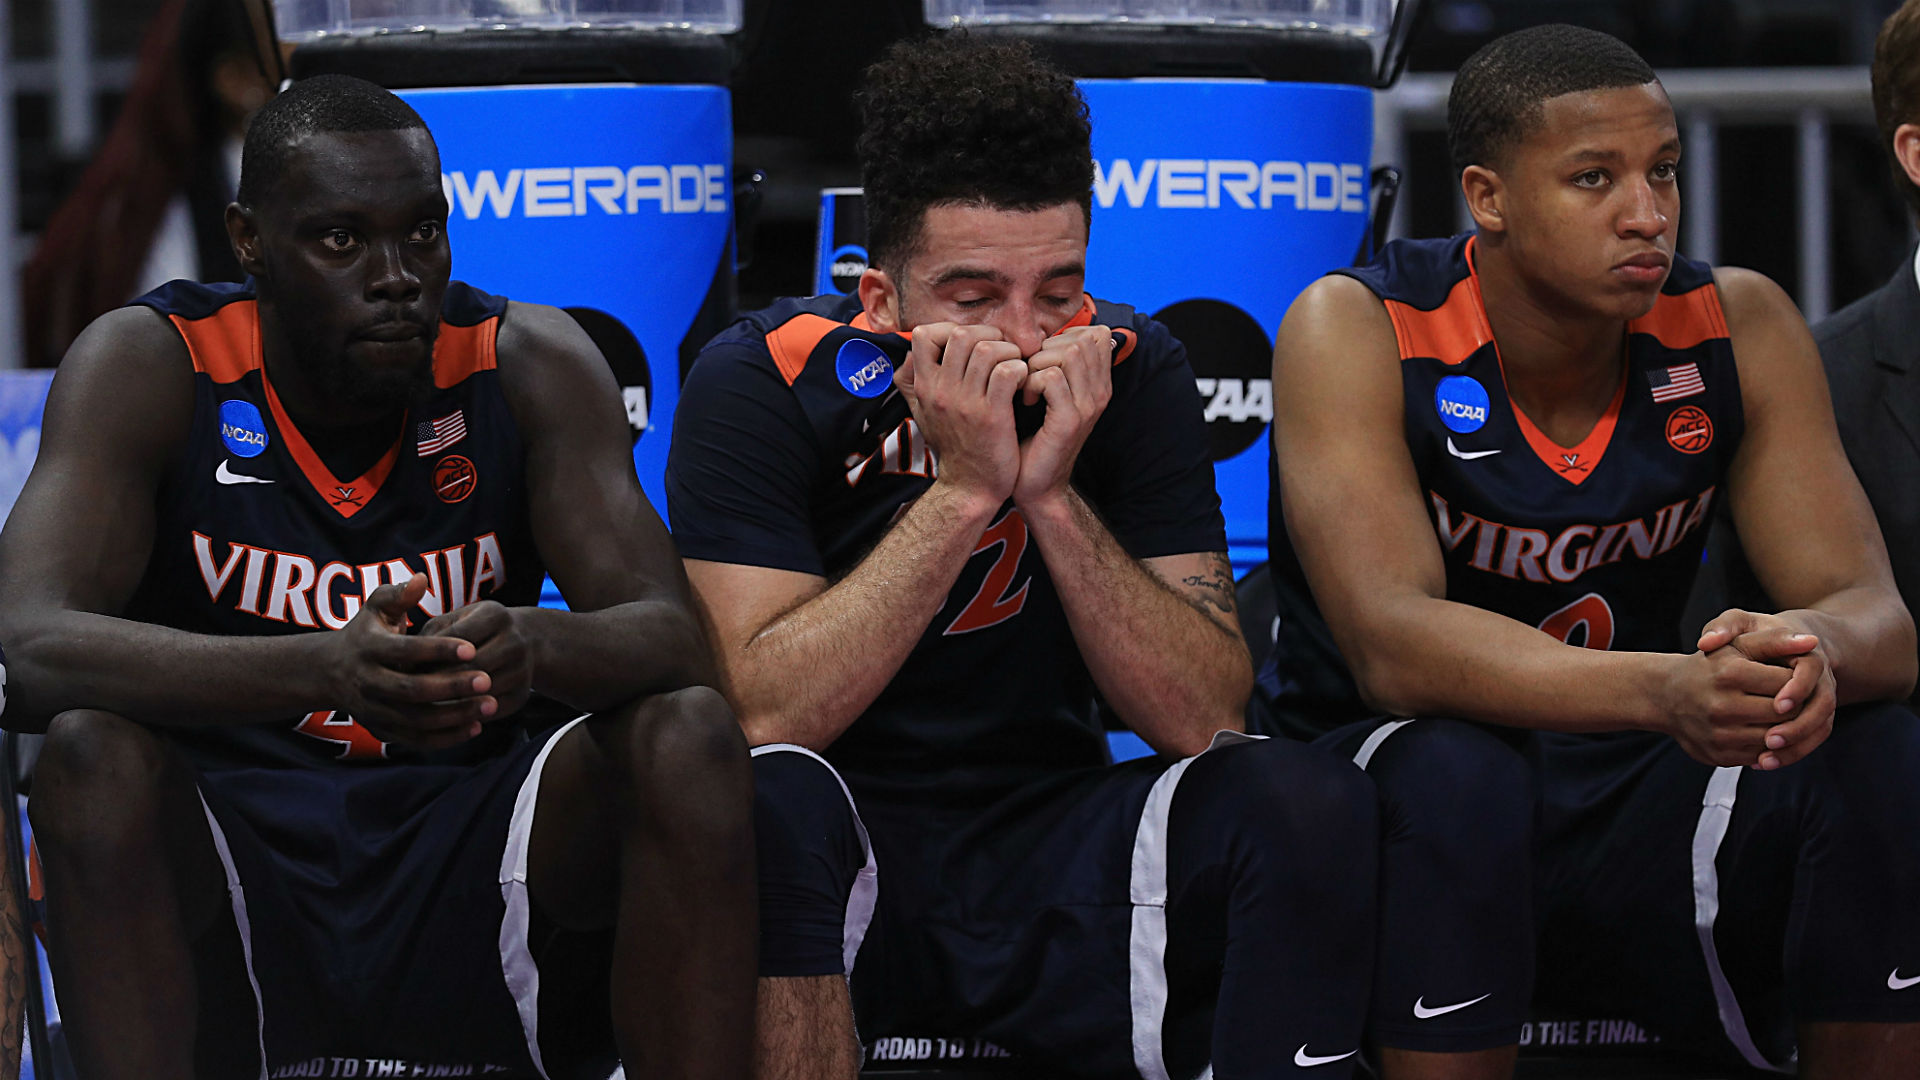 London-perrantes-uva-ncaa-031817-getty-ftrjpg_7aaqdnuljvwt1icxk8hn00i1y